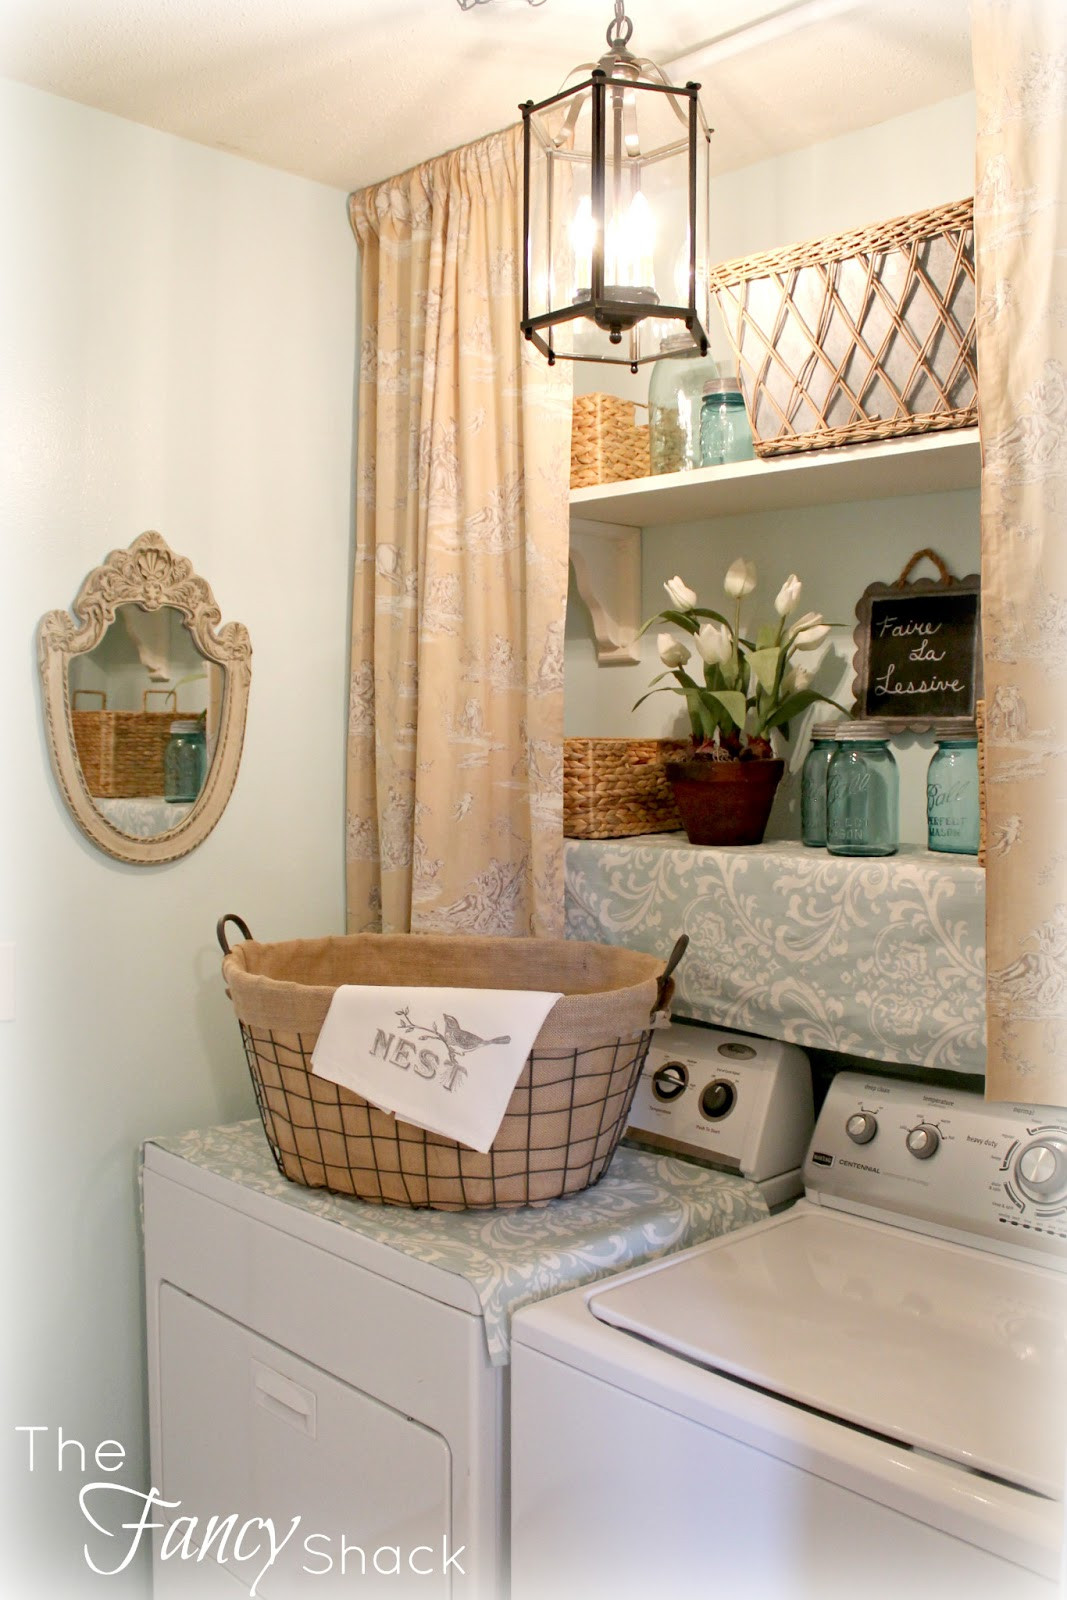 Best ideas about The Laundry Room . Save or Pin The Fancy Shack The Laundry Room Makeover Now.